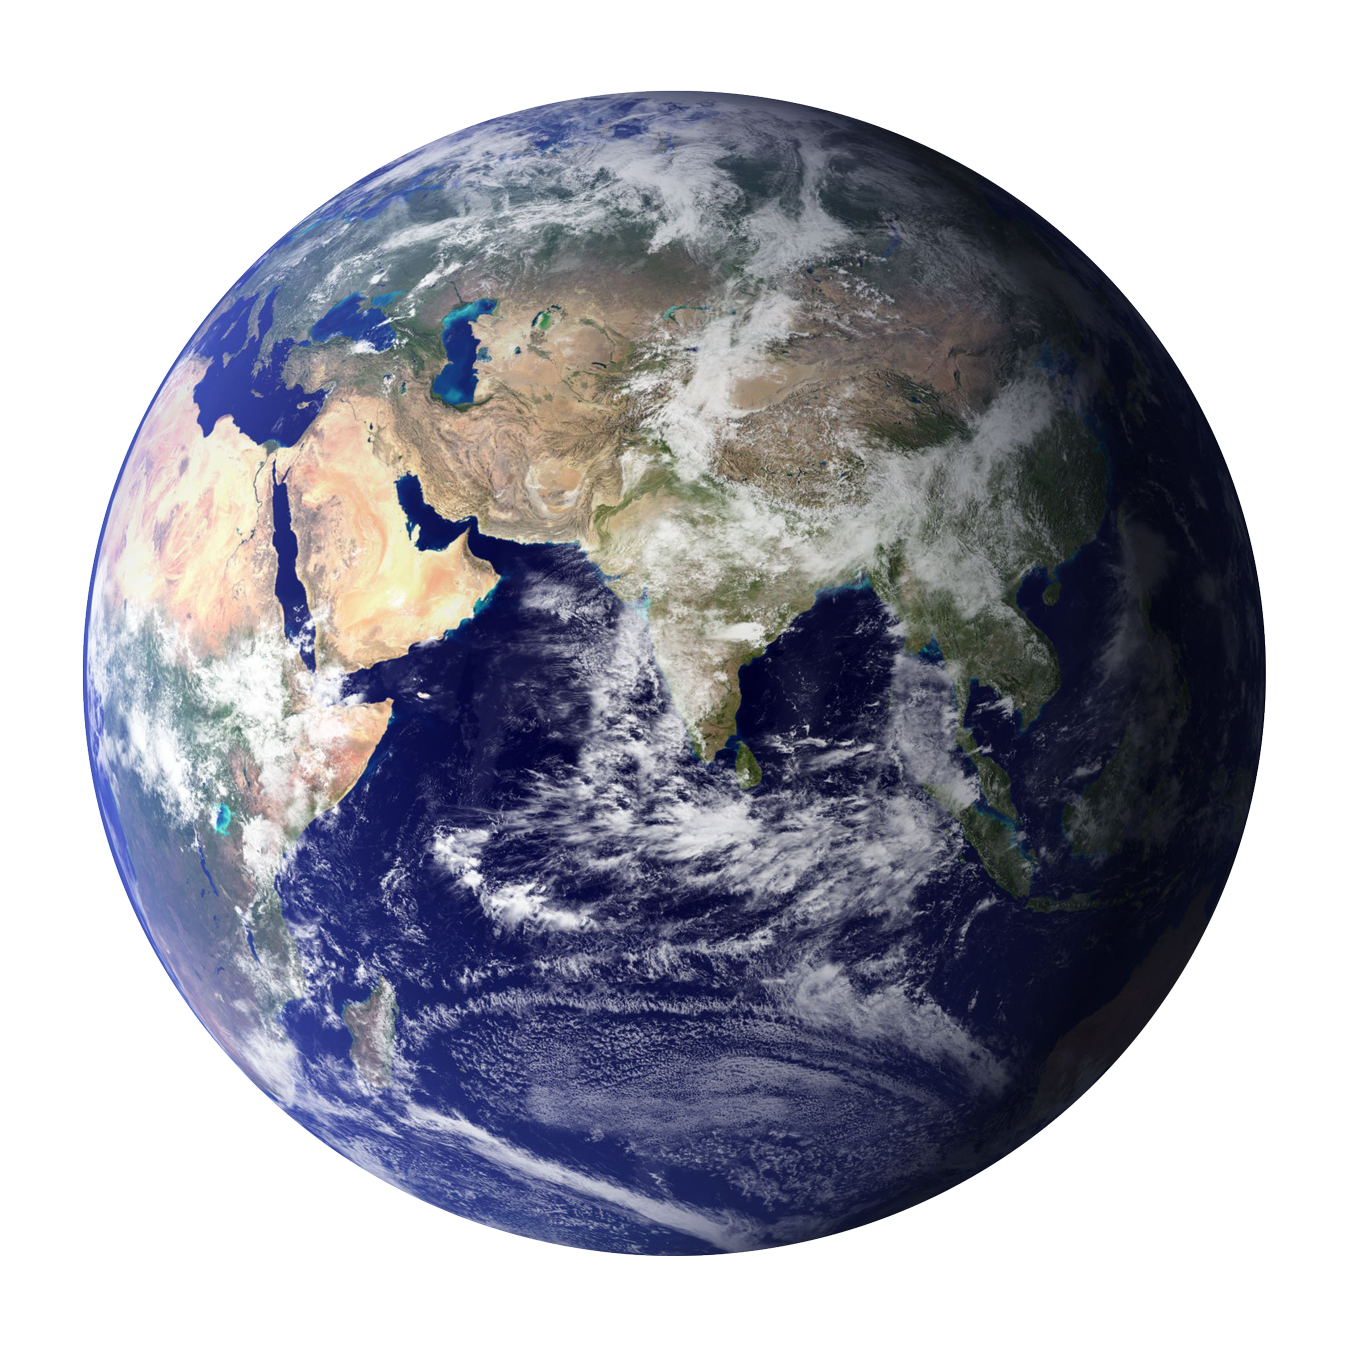 Clipart earth space. Png images free download